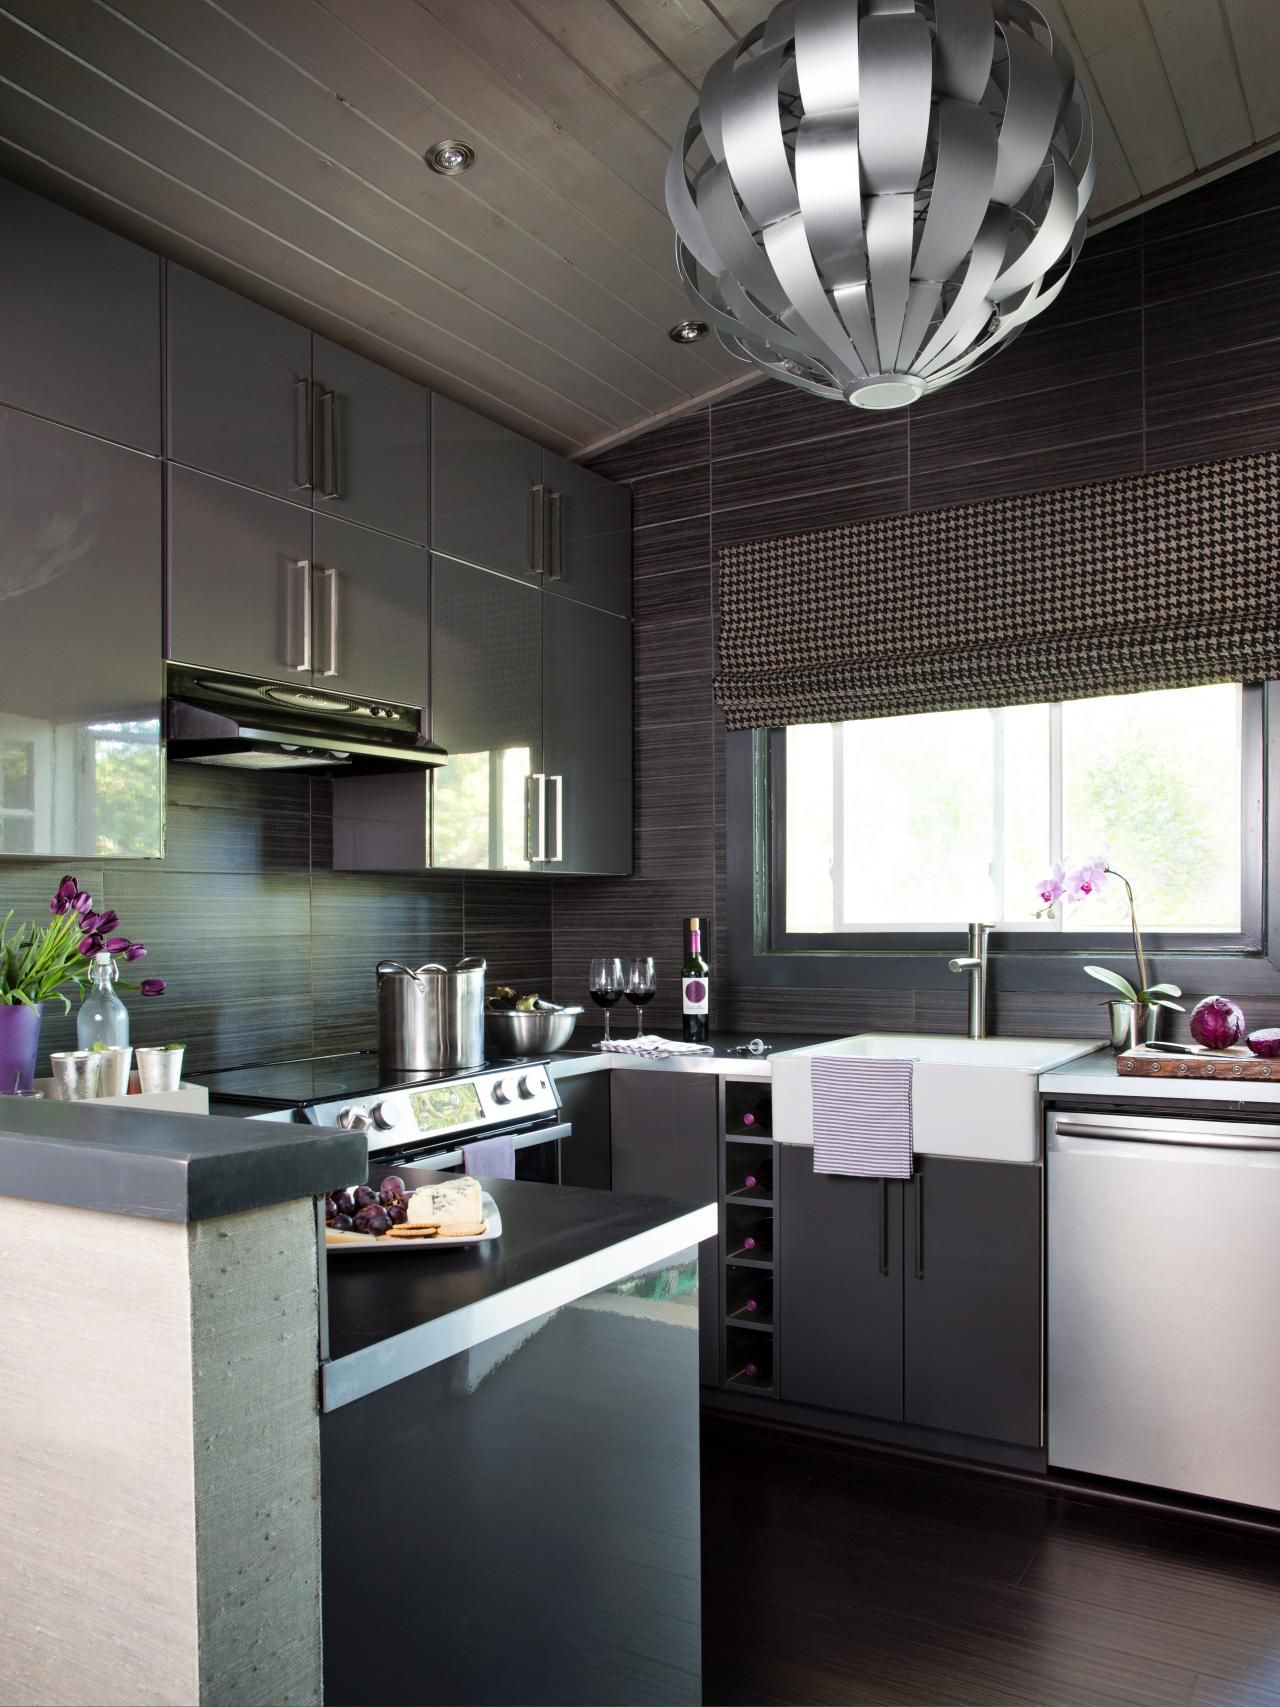 Midcentury modern kitchen remodel kitchen inspiration pinterest